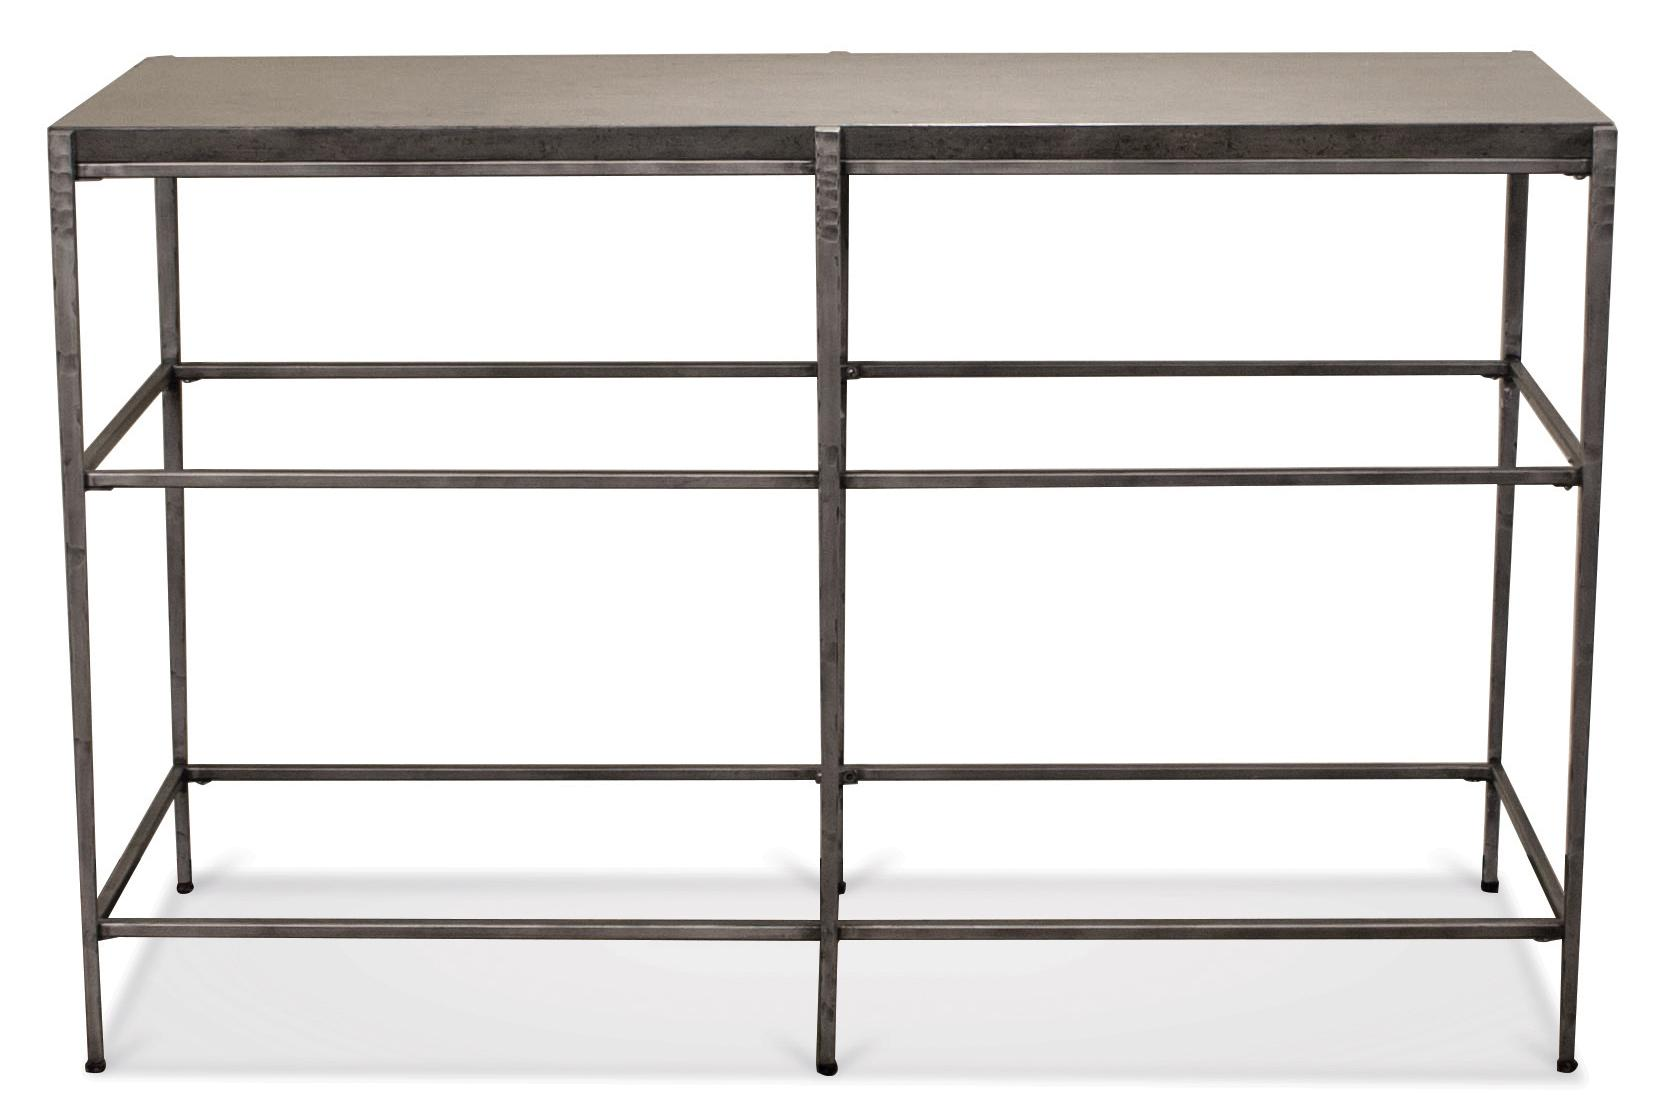 Riverside Furniture Lorraine Sofa Table - Item Number: 11615